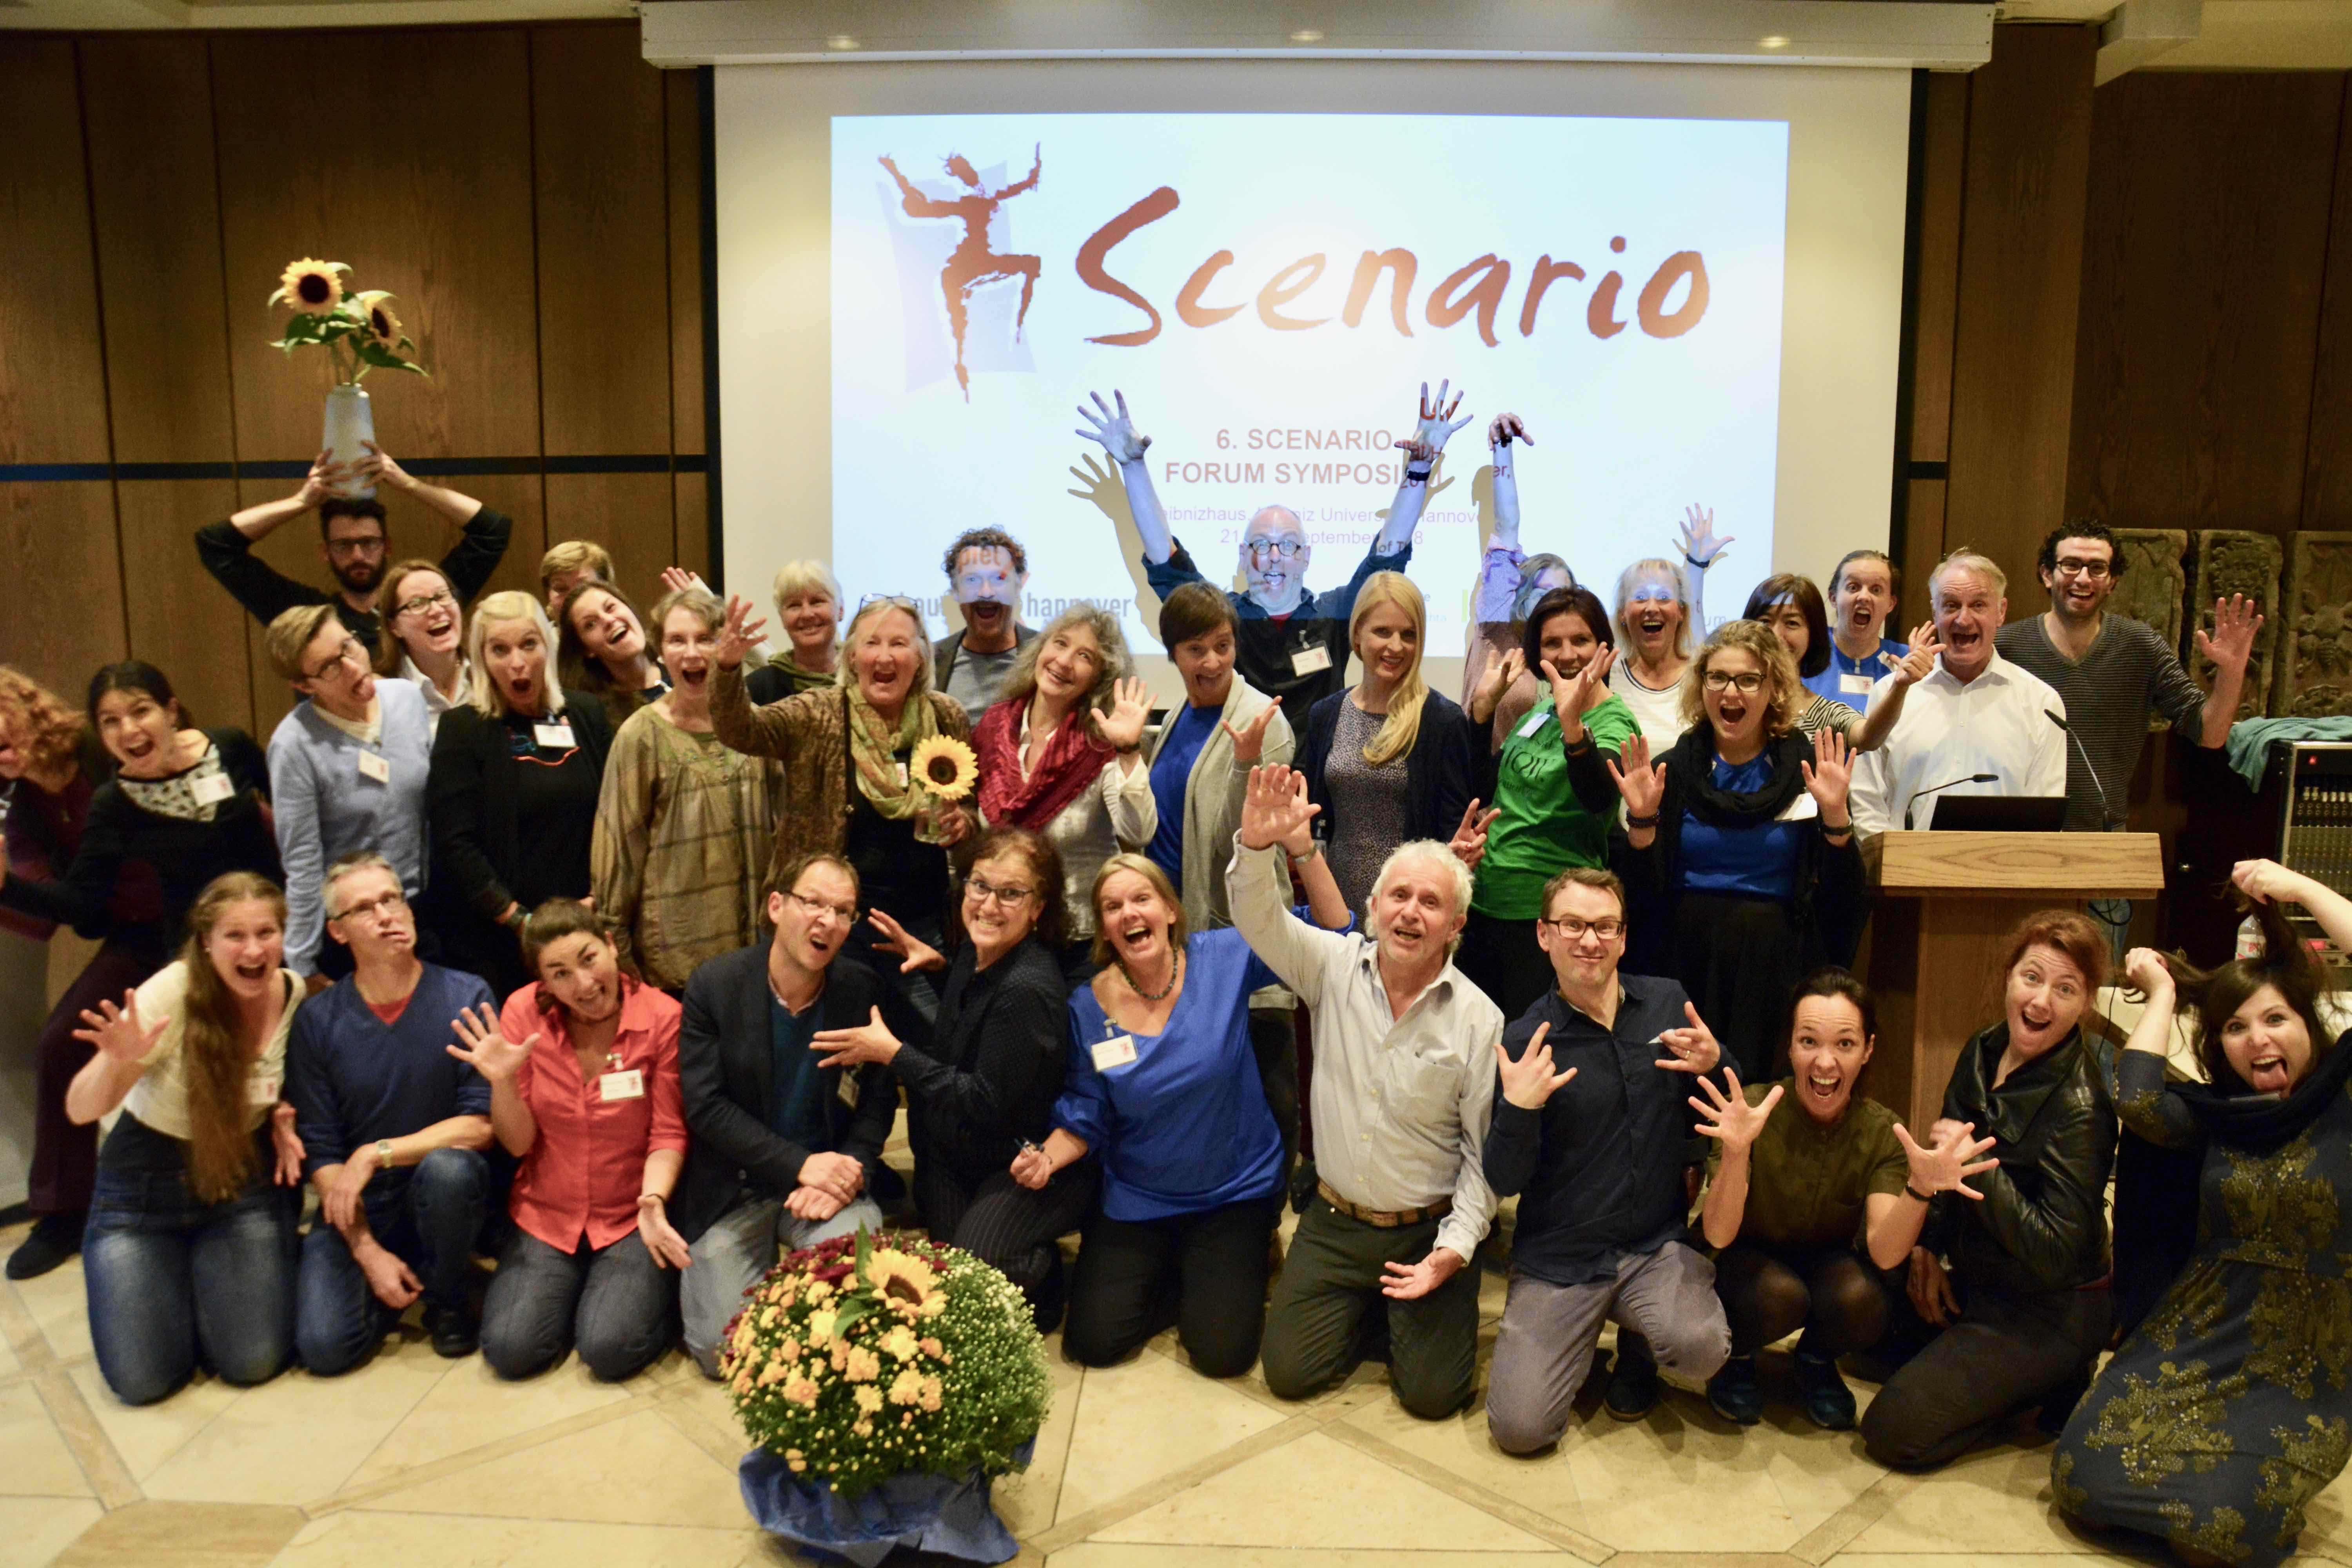 6th Scenario Forum Symposium – University of Hanover (21-22 September 2018)